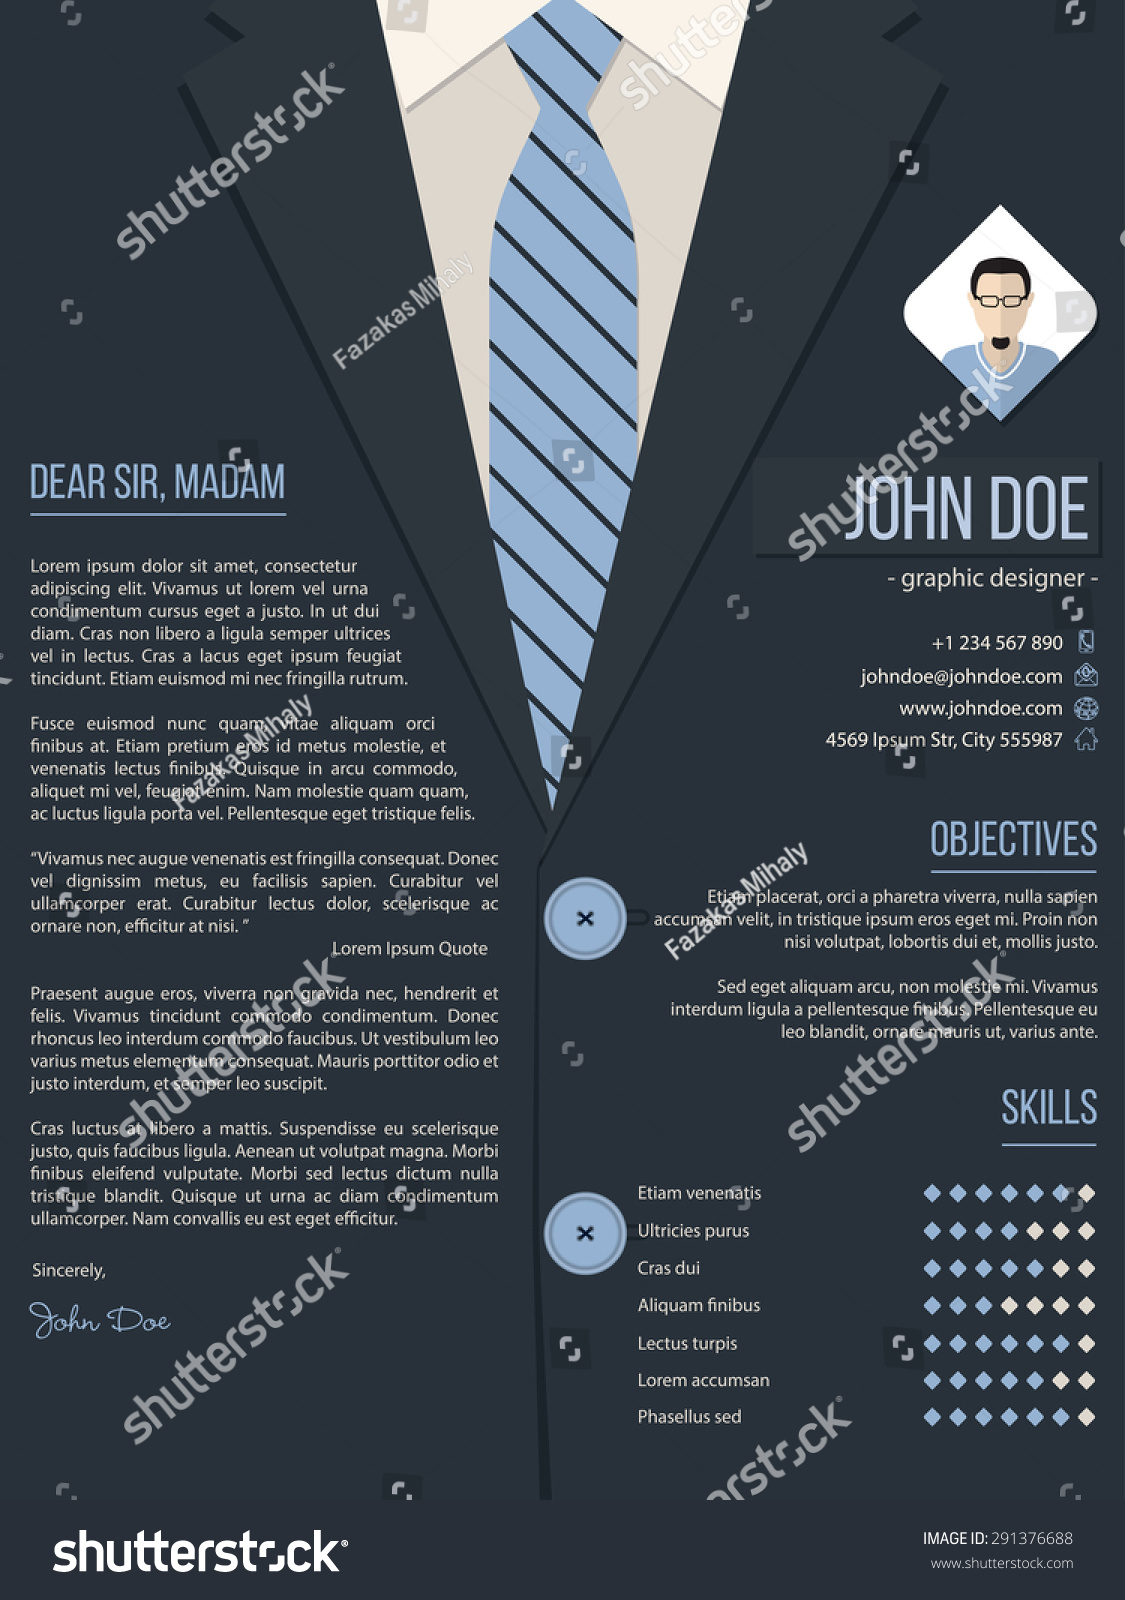 cool cover letter resume cv template design with business suit background - Cover Letter With Resume